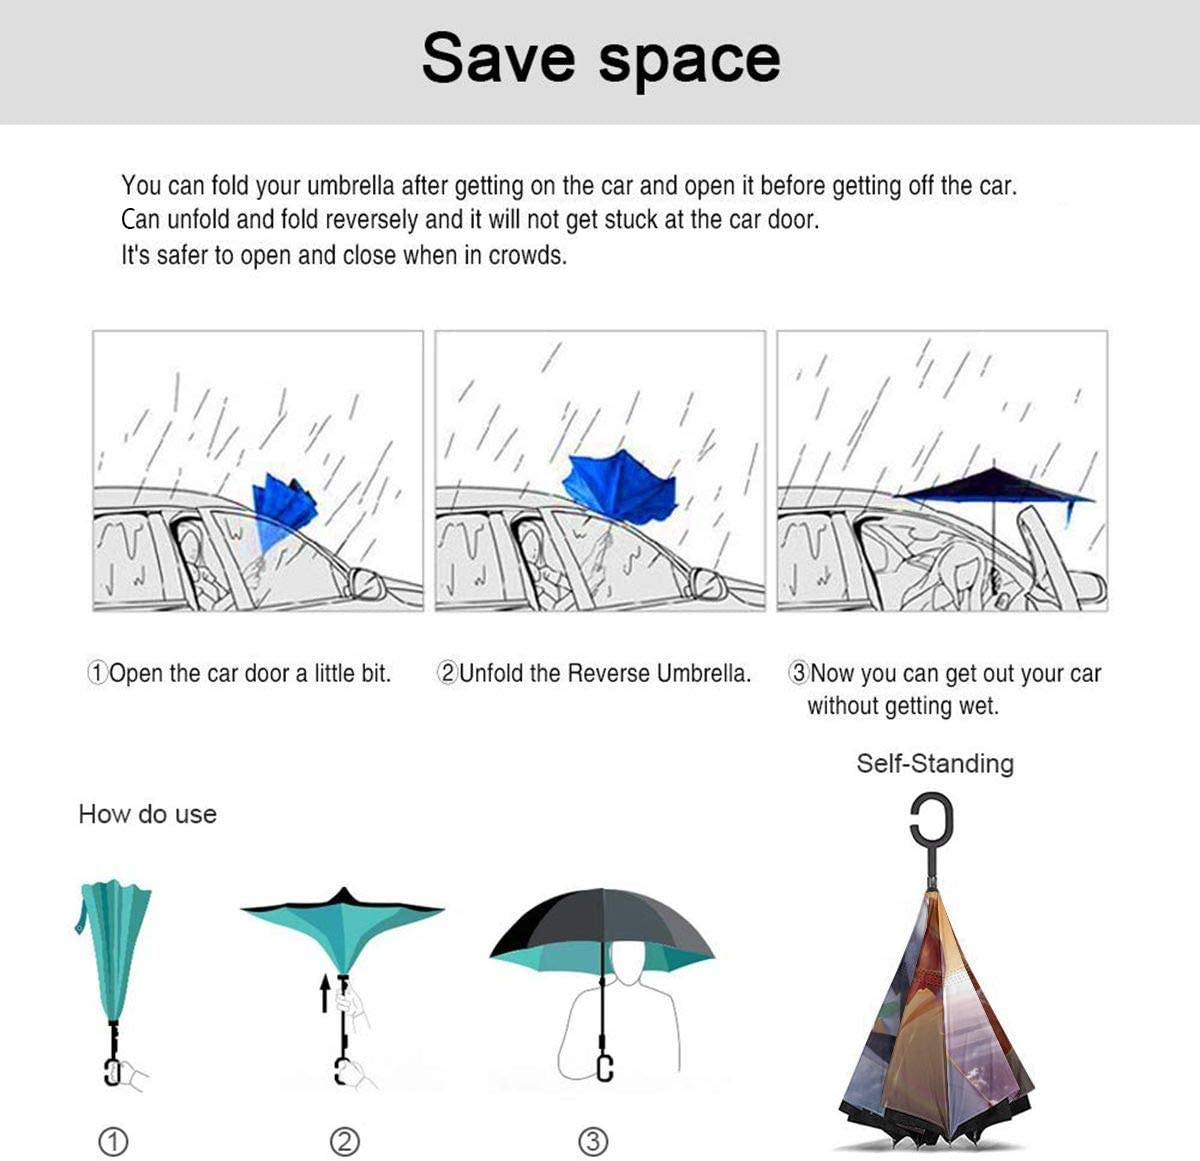 With C-Shaped Handle UV Protection Inverted Folding Umbrellas Windproof And Rainproof Double Folding Inverted Umbrella Evangelion Evangelion Anime Girl Space Car Reverse Umbrella